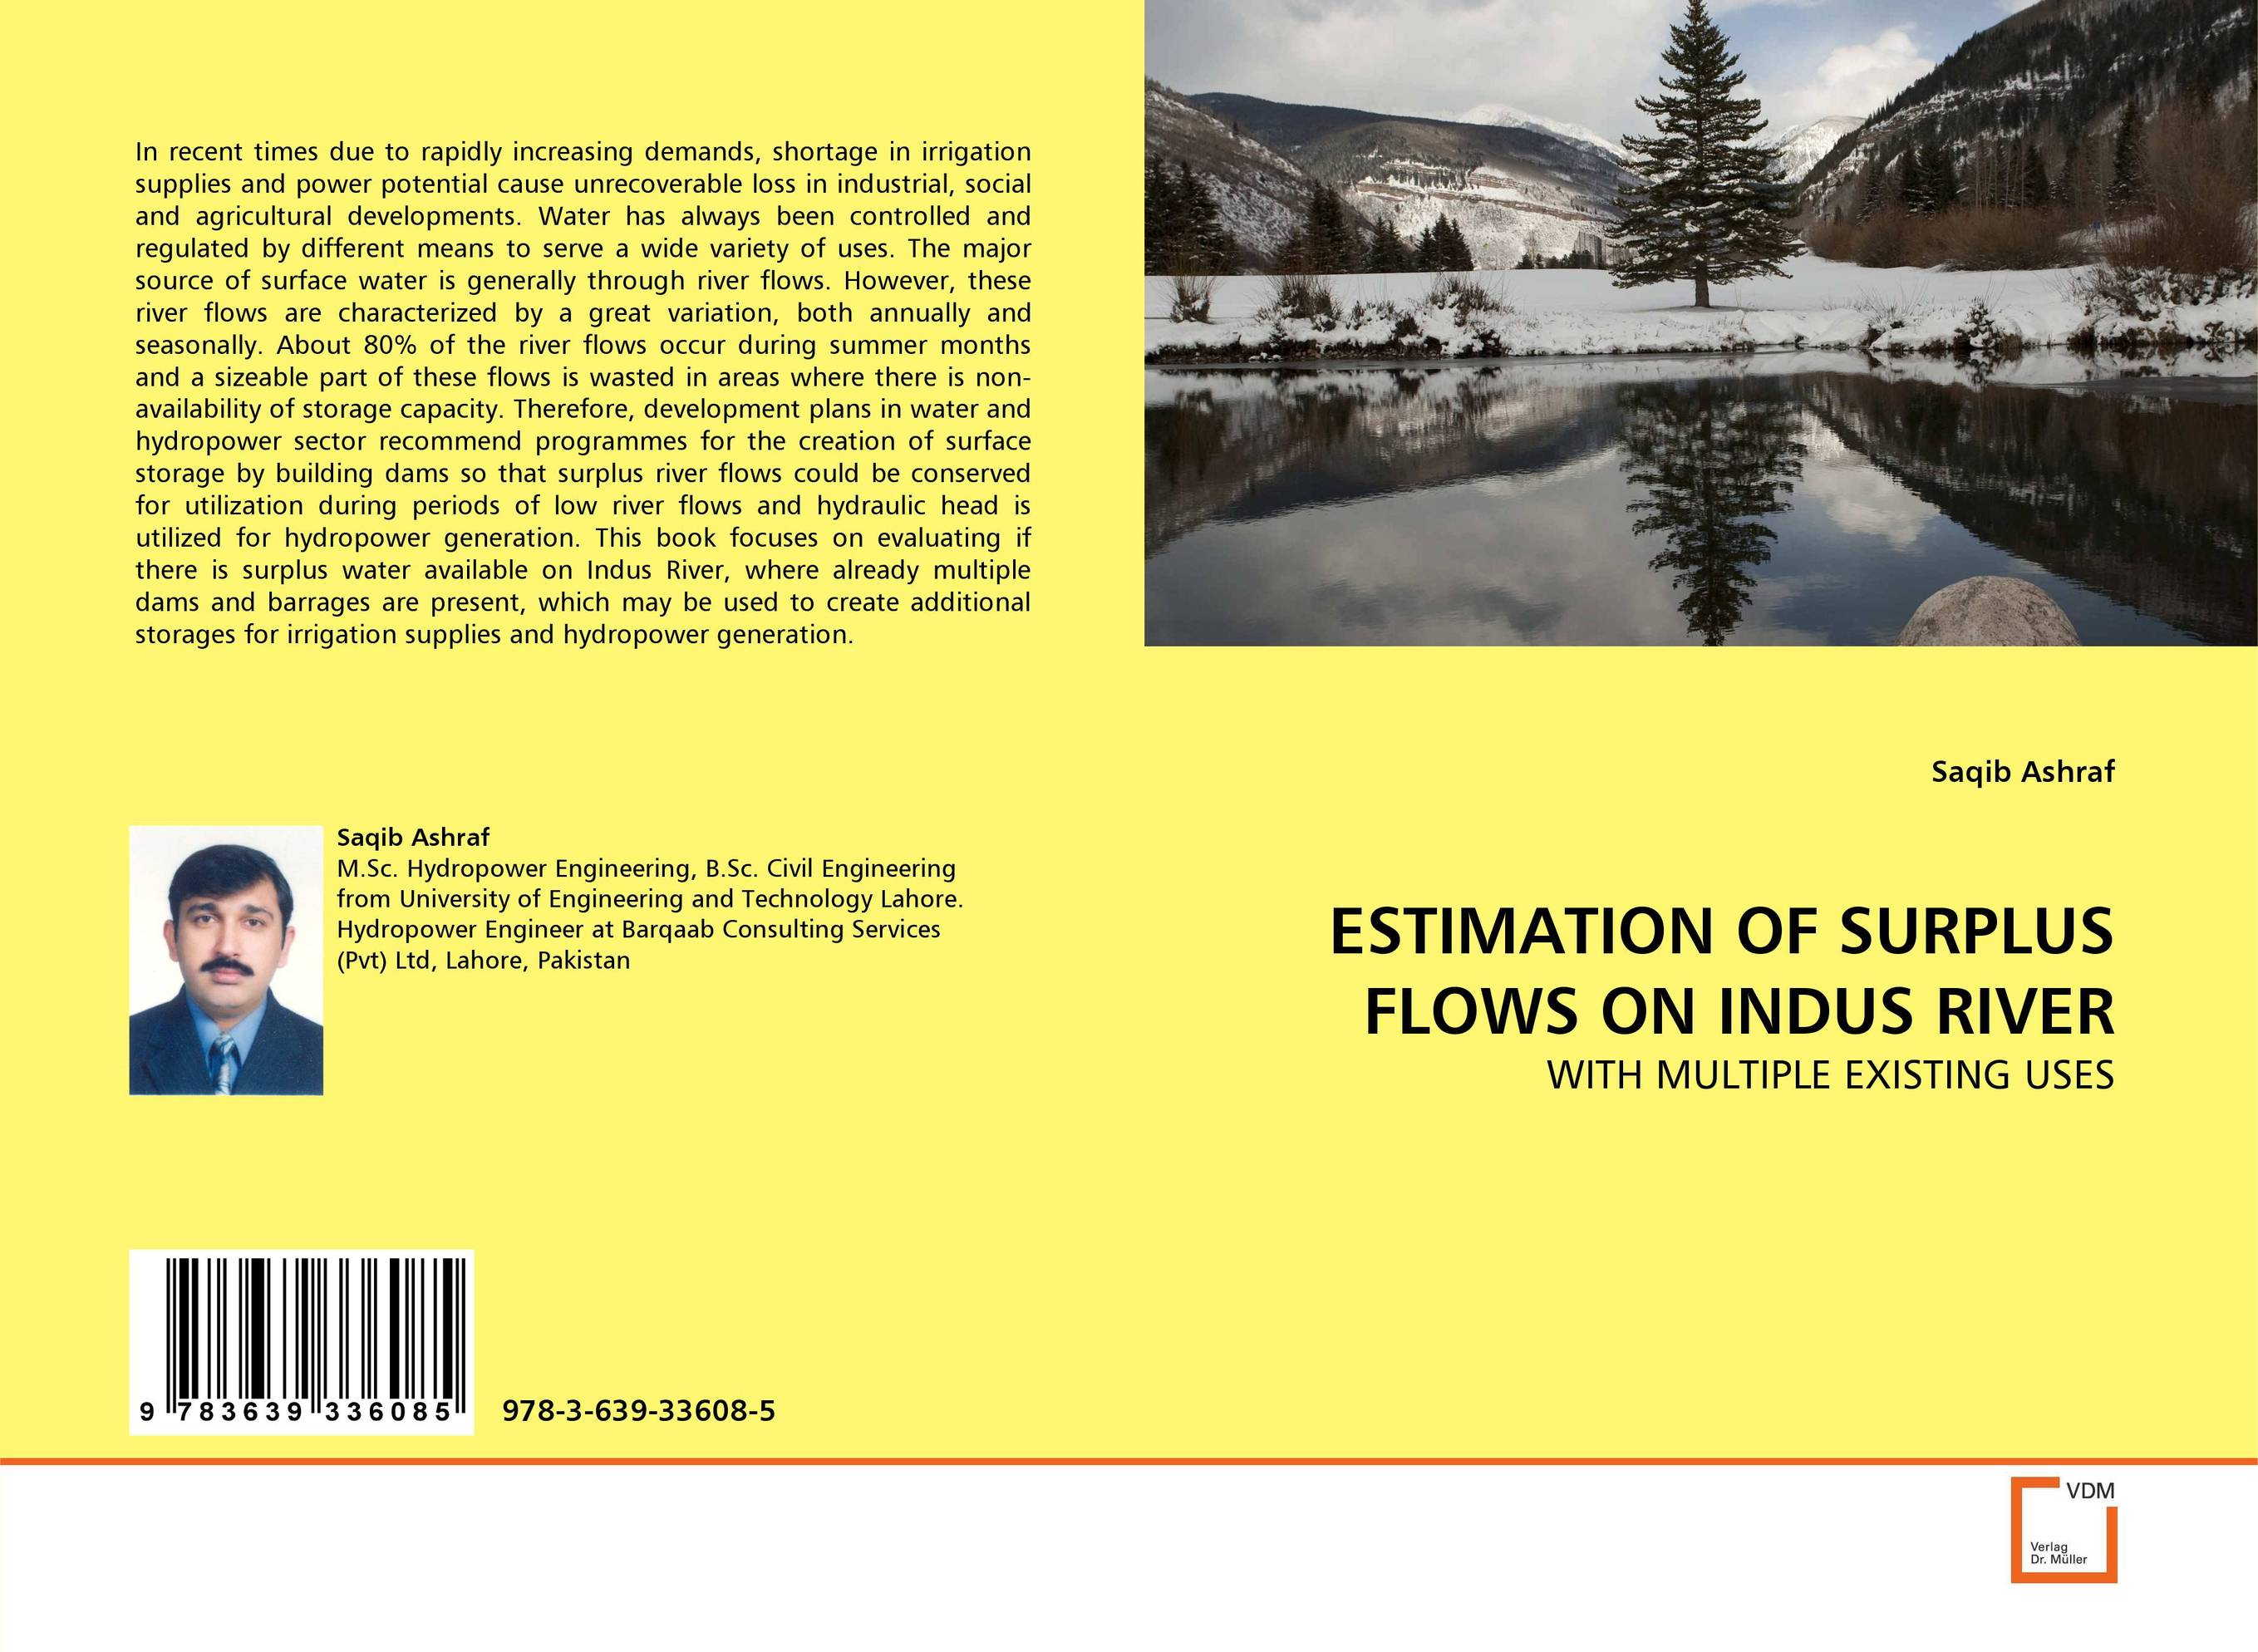 ESTIMATION OF SURPLUS FLOWS ON INDUS RIVER effects of dams on river water quality